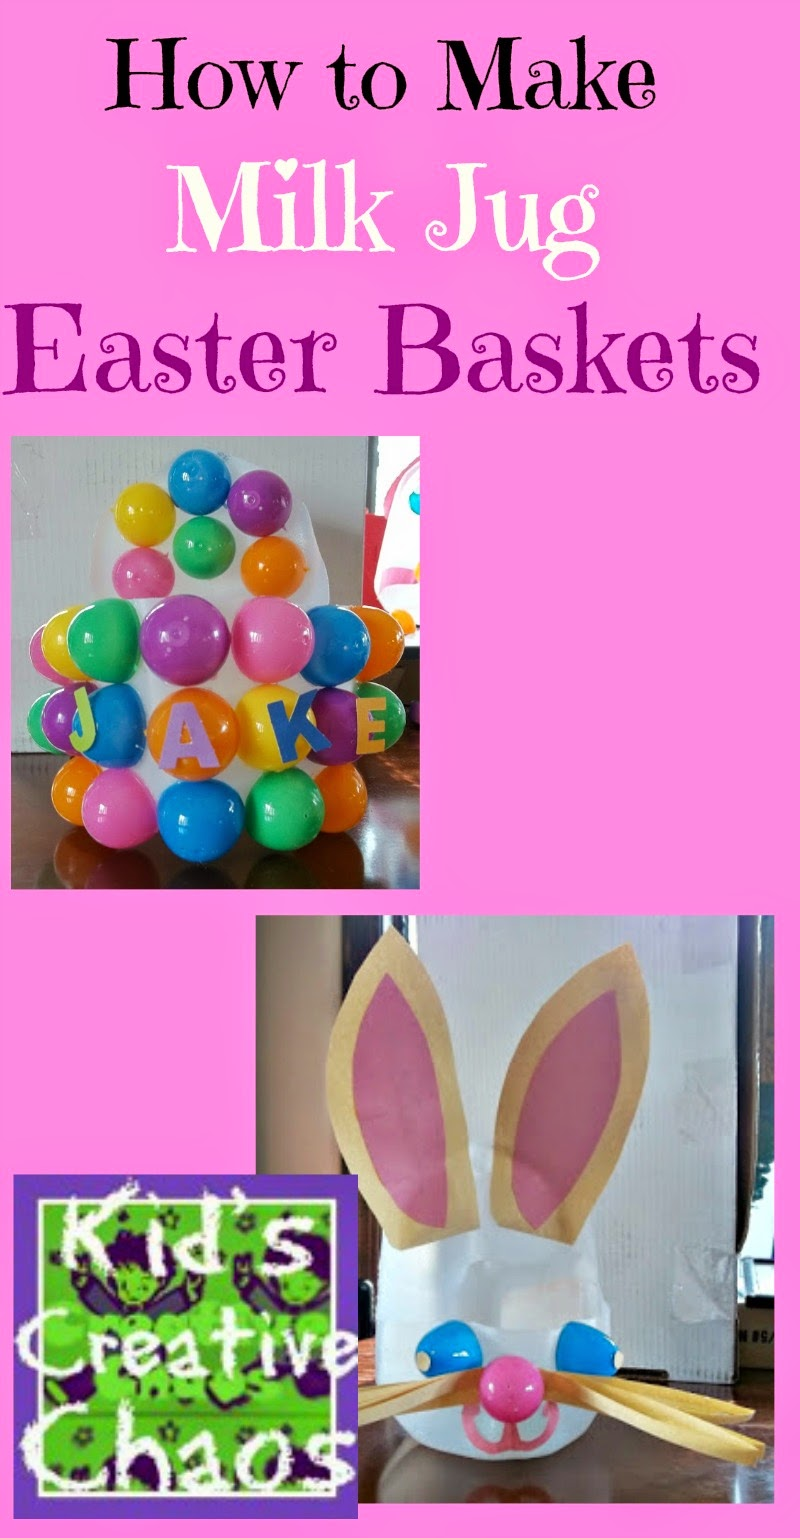 How to make an Easter basket from a milk jug.